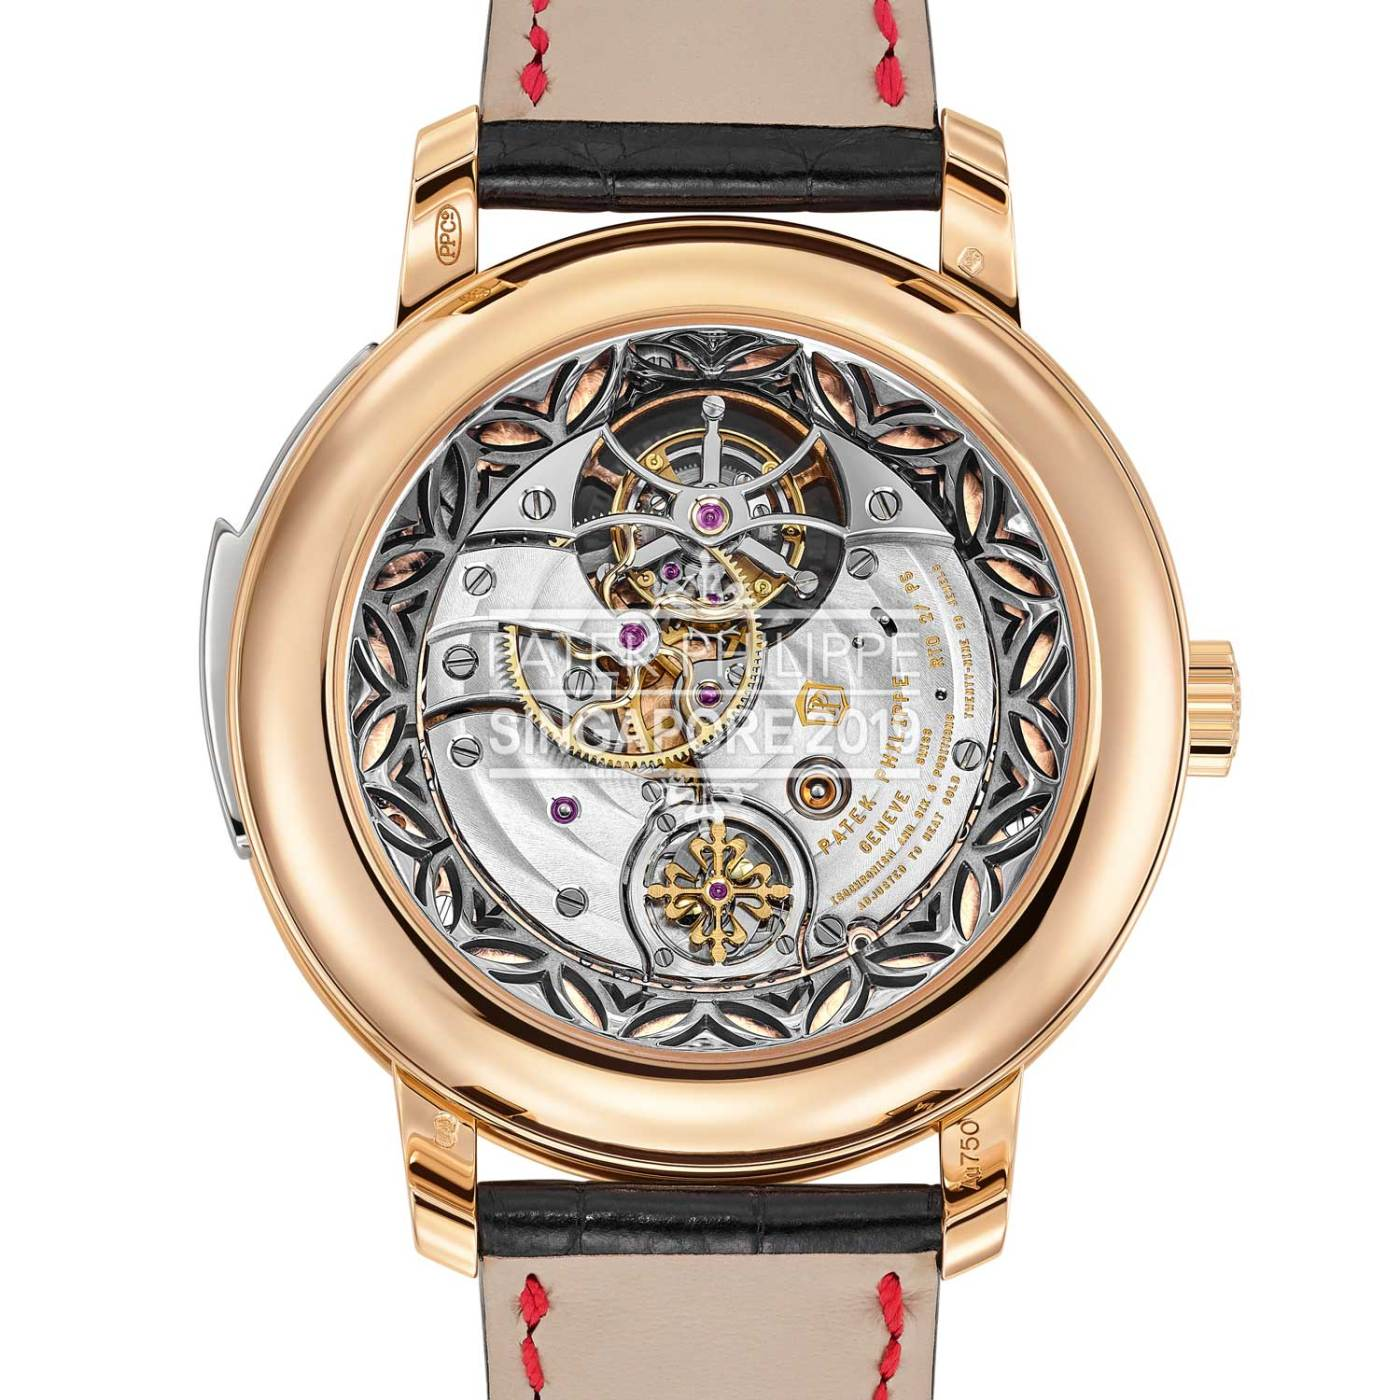 Patek Philippe Minute Repeater Tourbillon Singapore 2019 Ref. 5303R-010 caseback